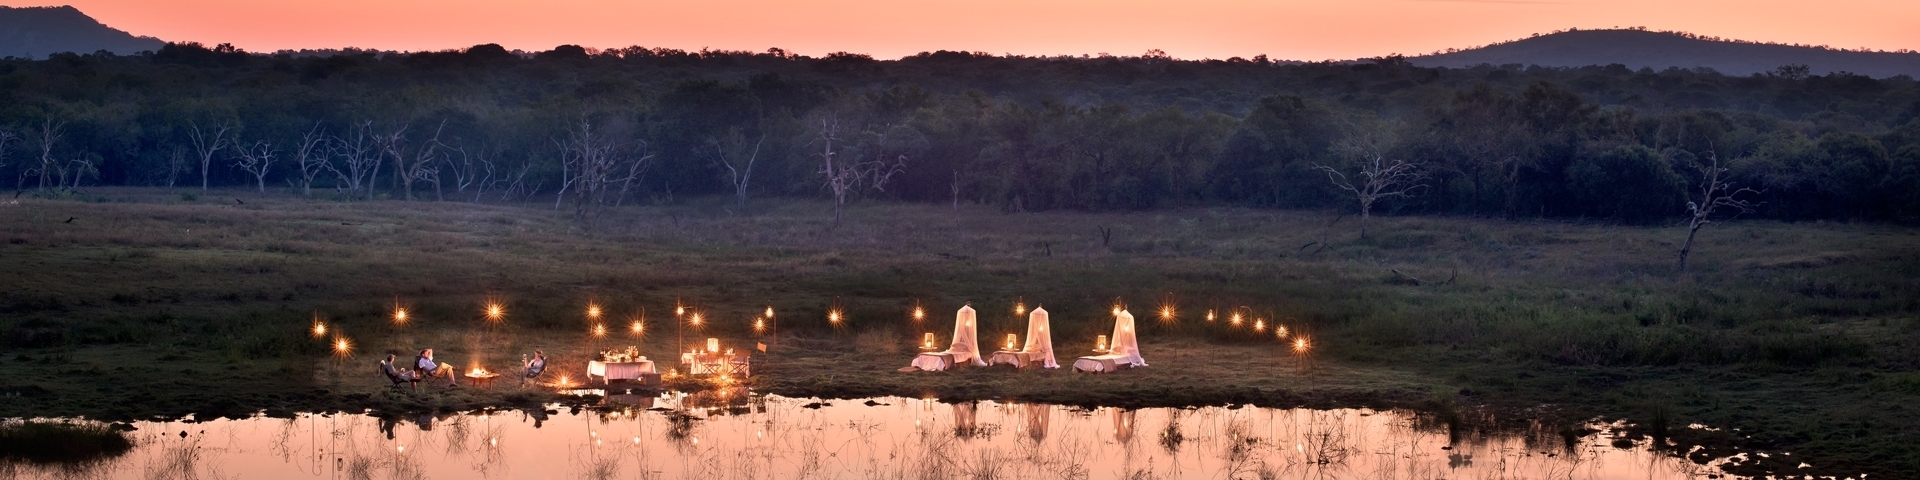 Phinda Private Game Reserve, sleep out under the stars banner